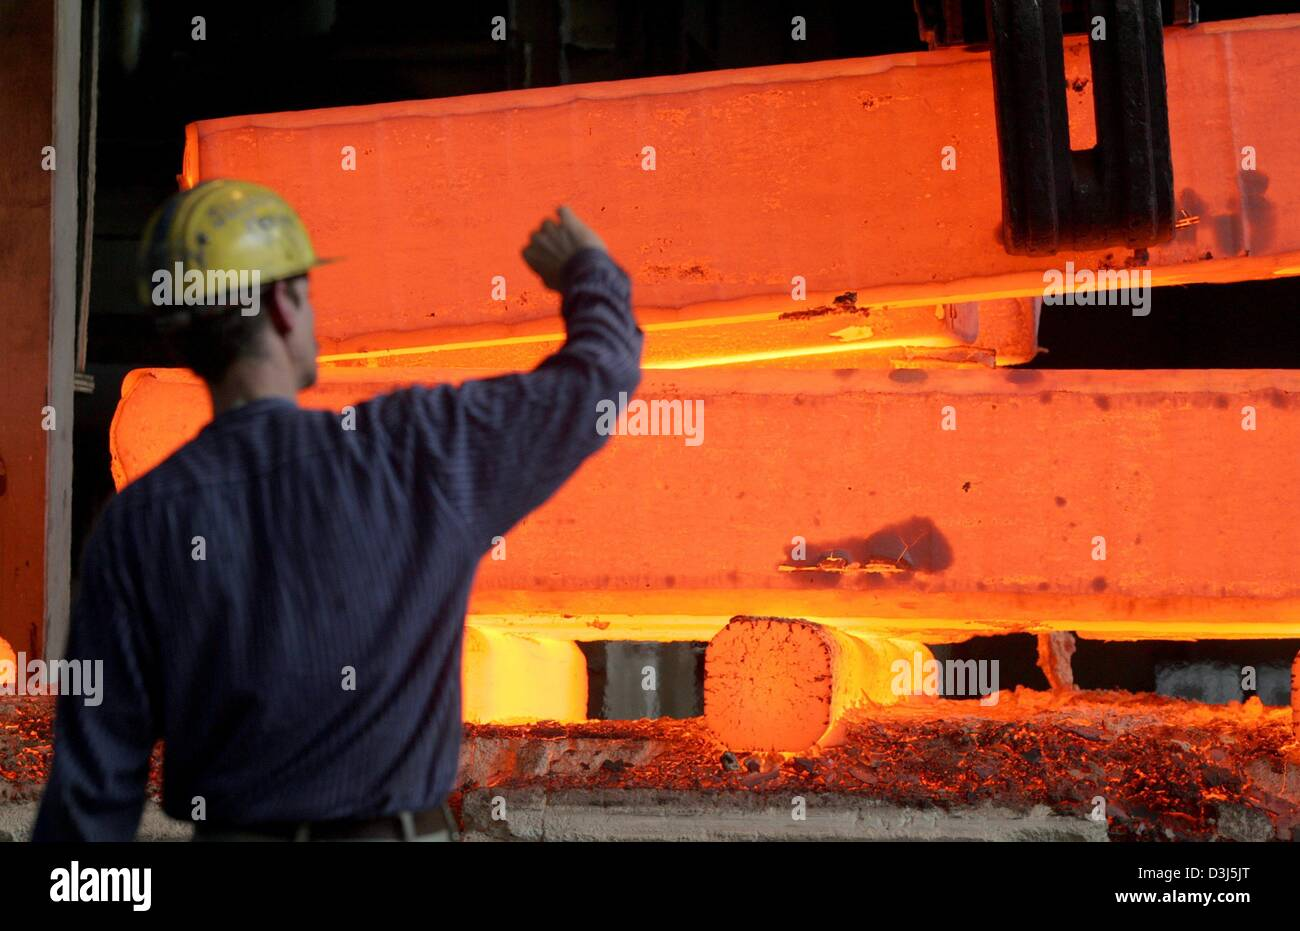 (dpa) - A worker holds his hand up protecting himself from the heat of a glowing block steel at the Edelstahlschmiede Stock Photo